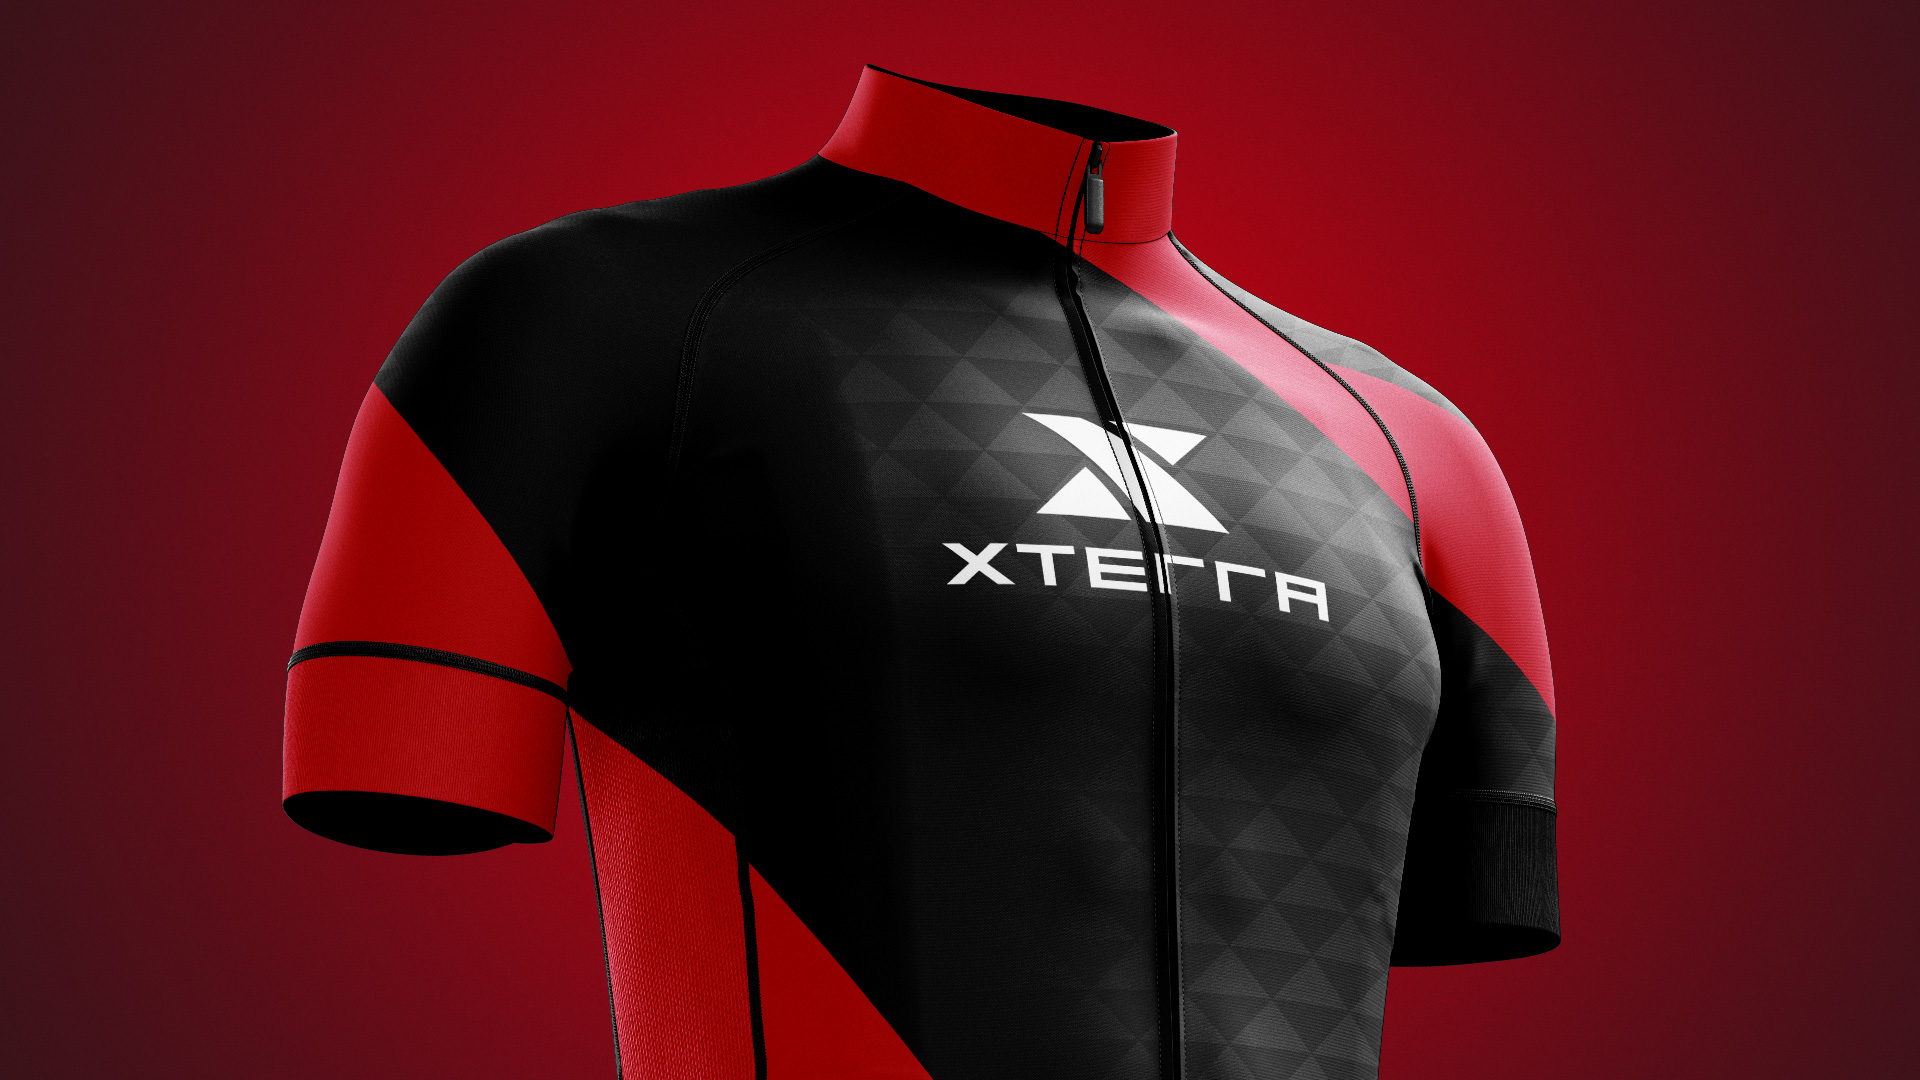 XTERRA - Apparel Design - Cycling Kit